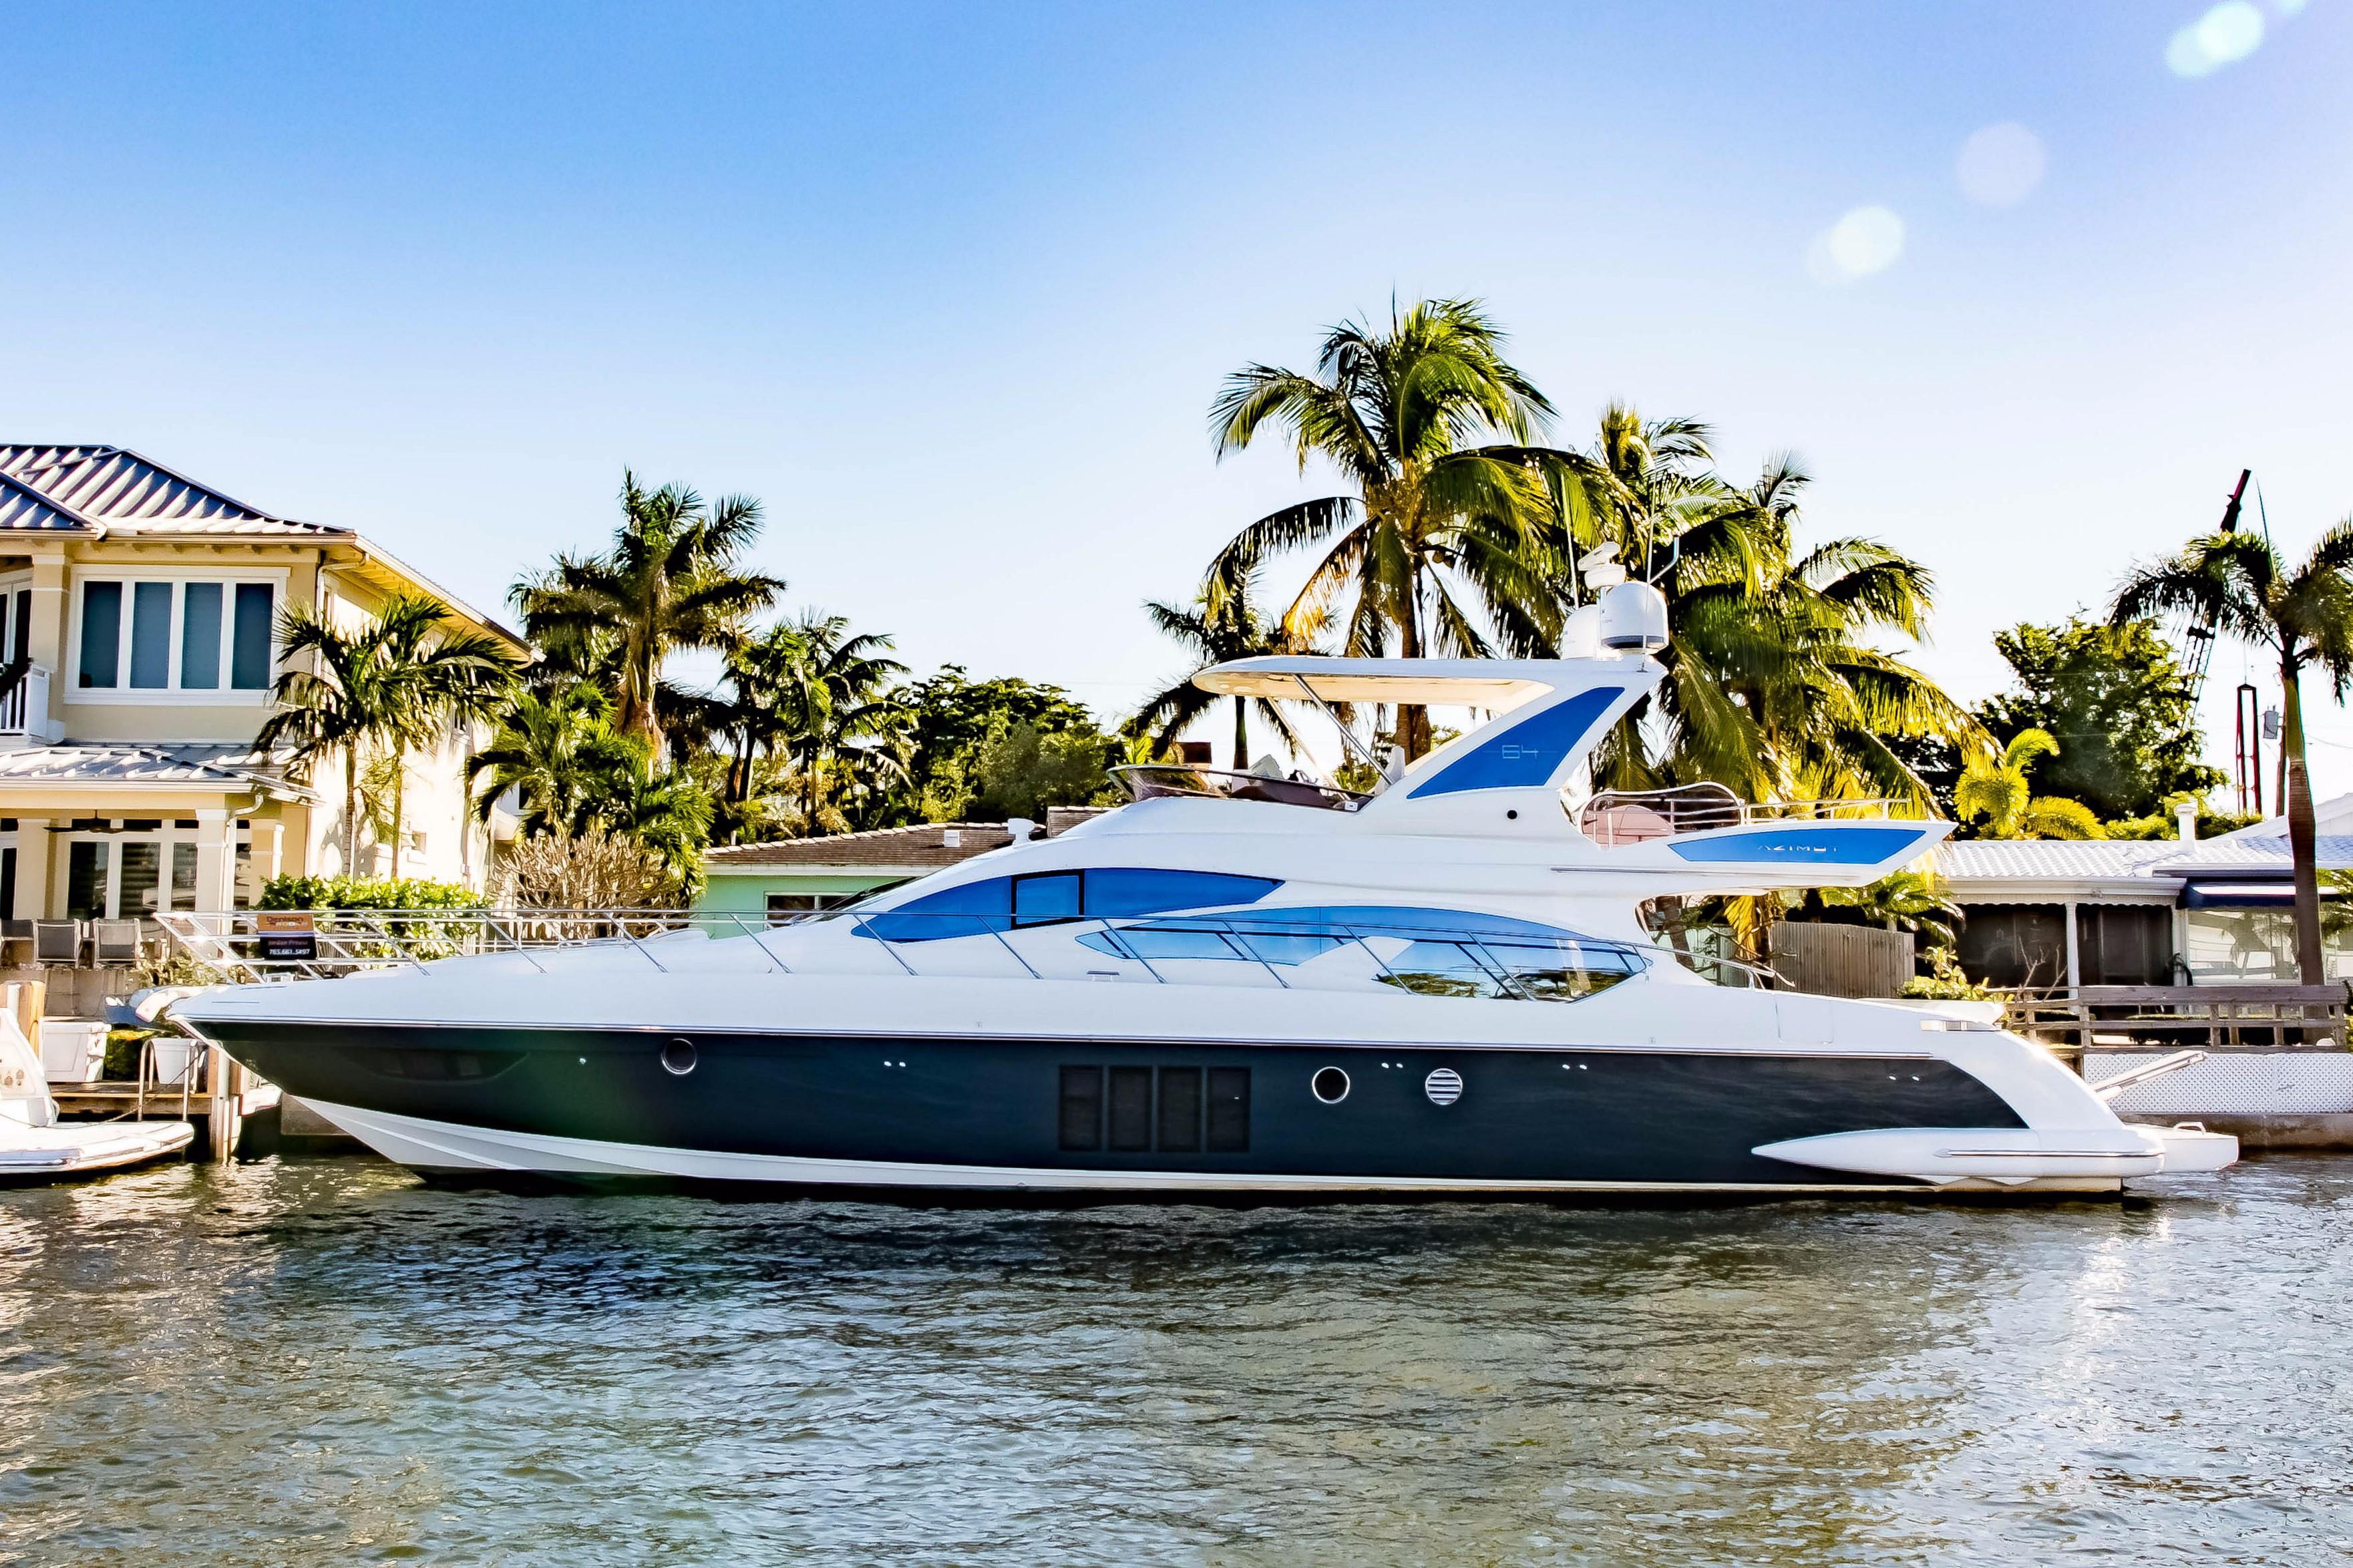 64 Azimut 2015 Trade In Ft. Lauderdale, Florida